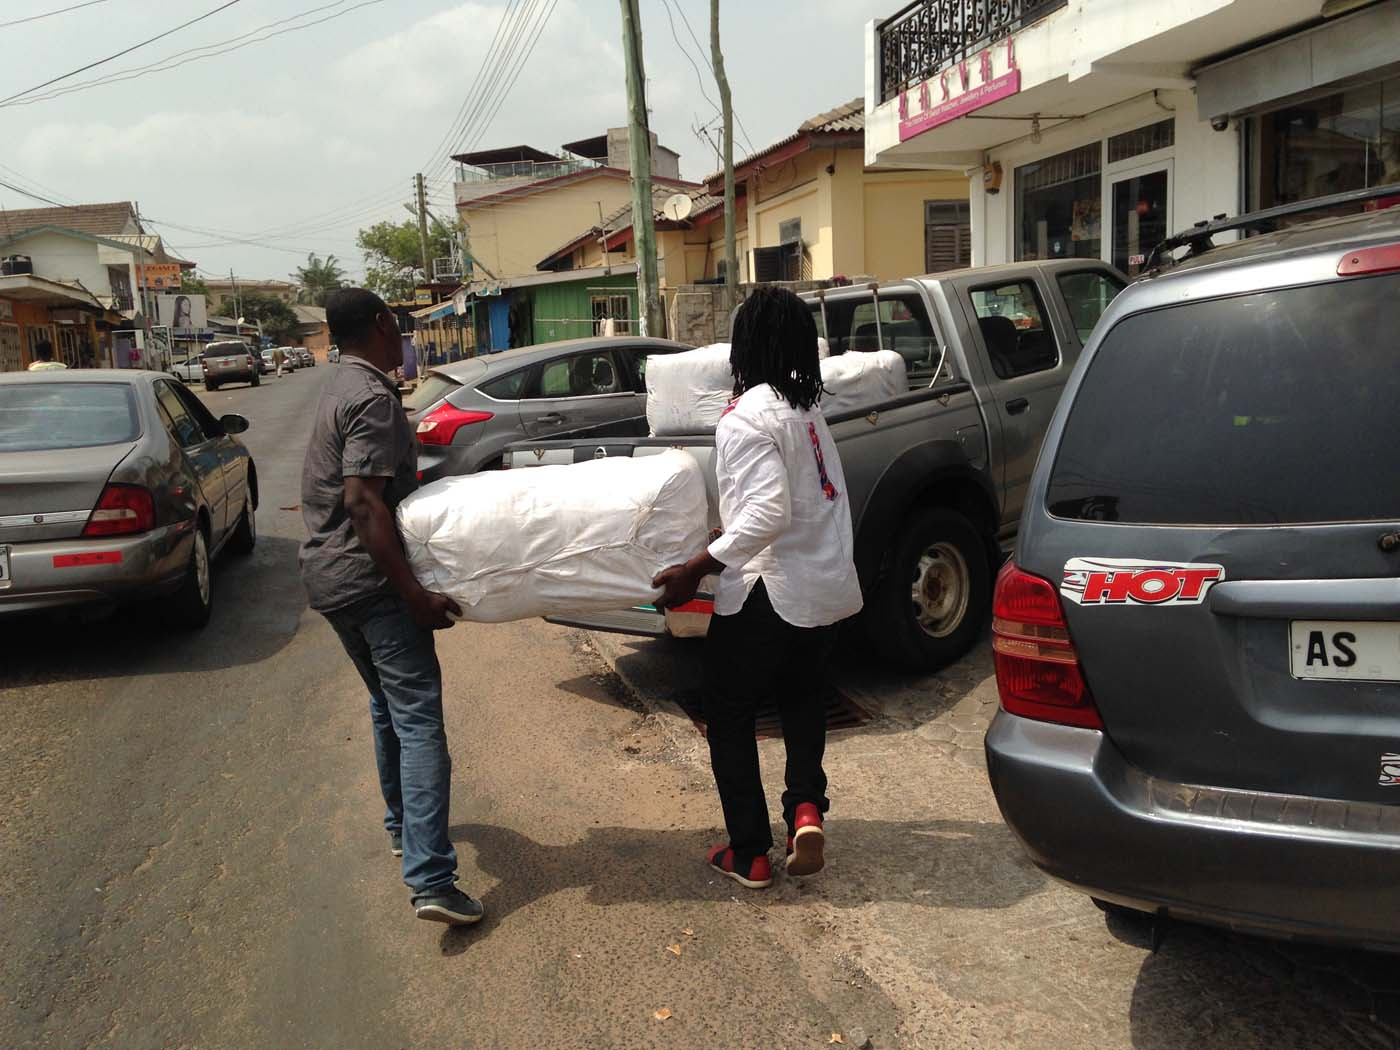 Buying mosquito nets in Accra